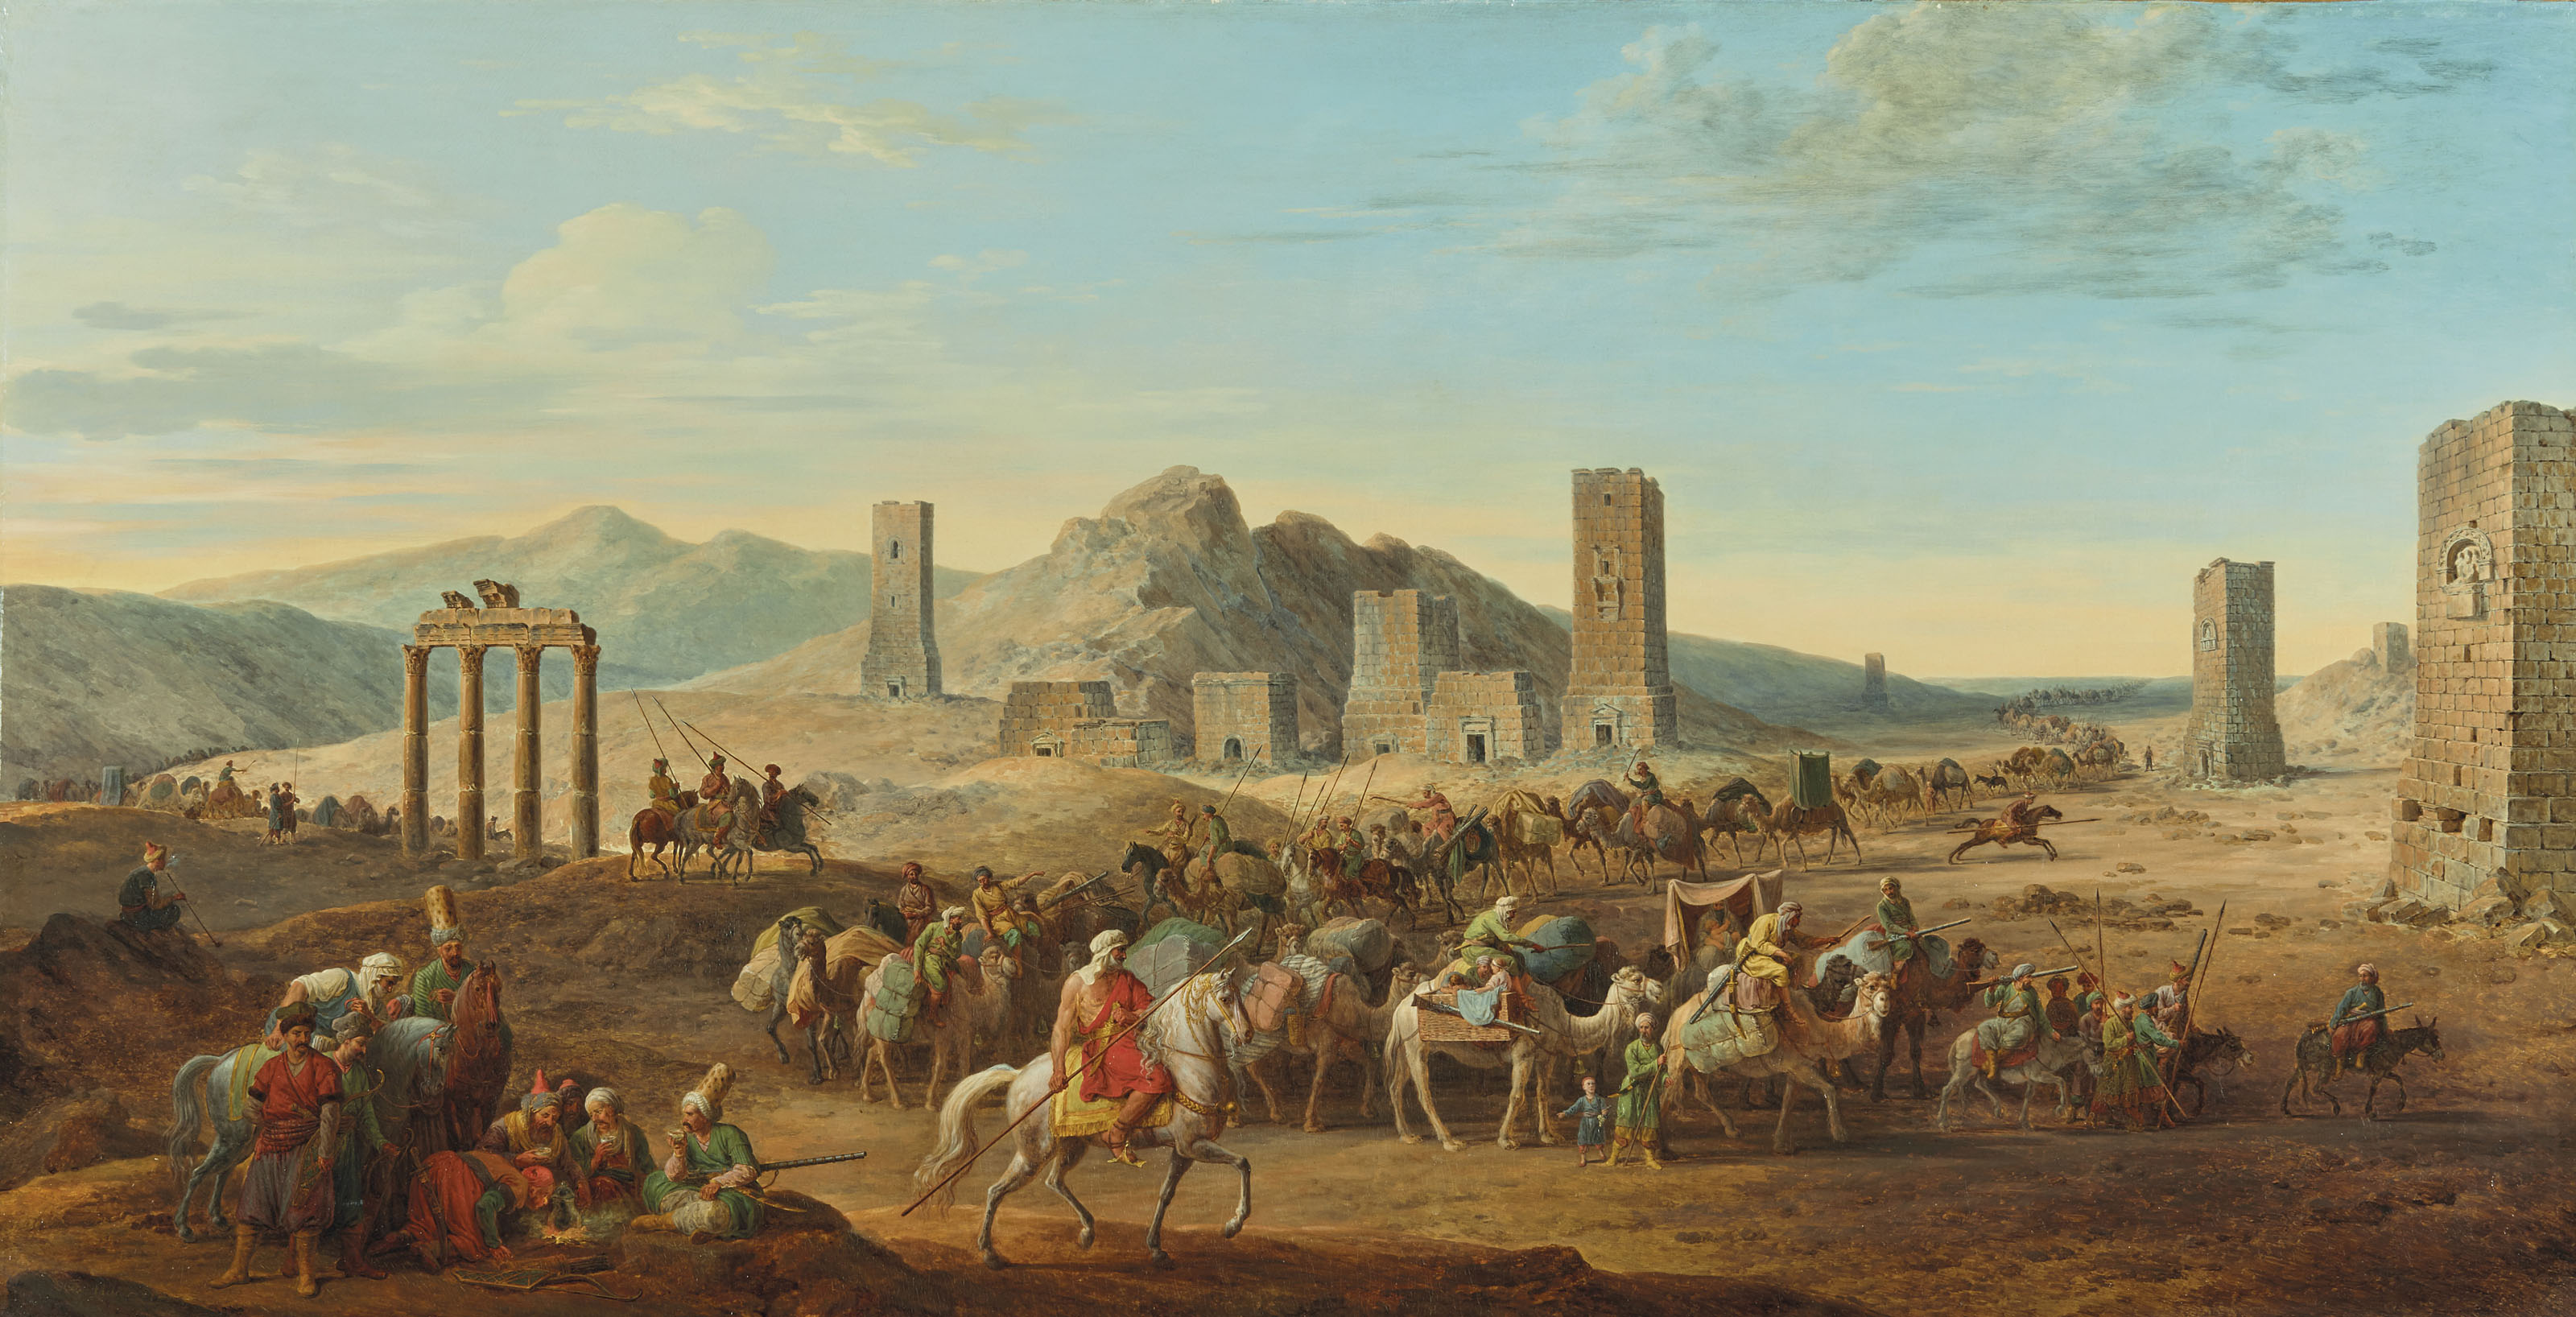 A desert landscape with travellers passing through the Valley of the Tombs, Palmyra